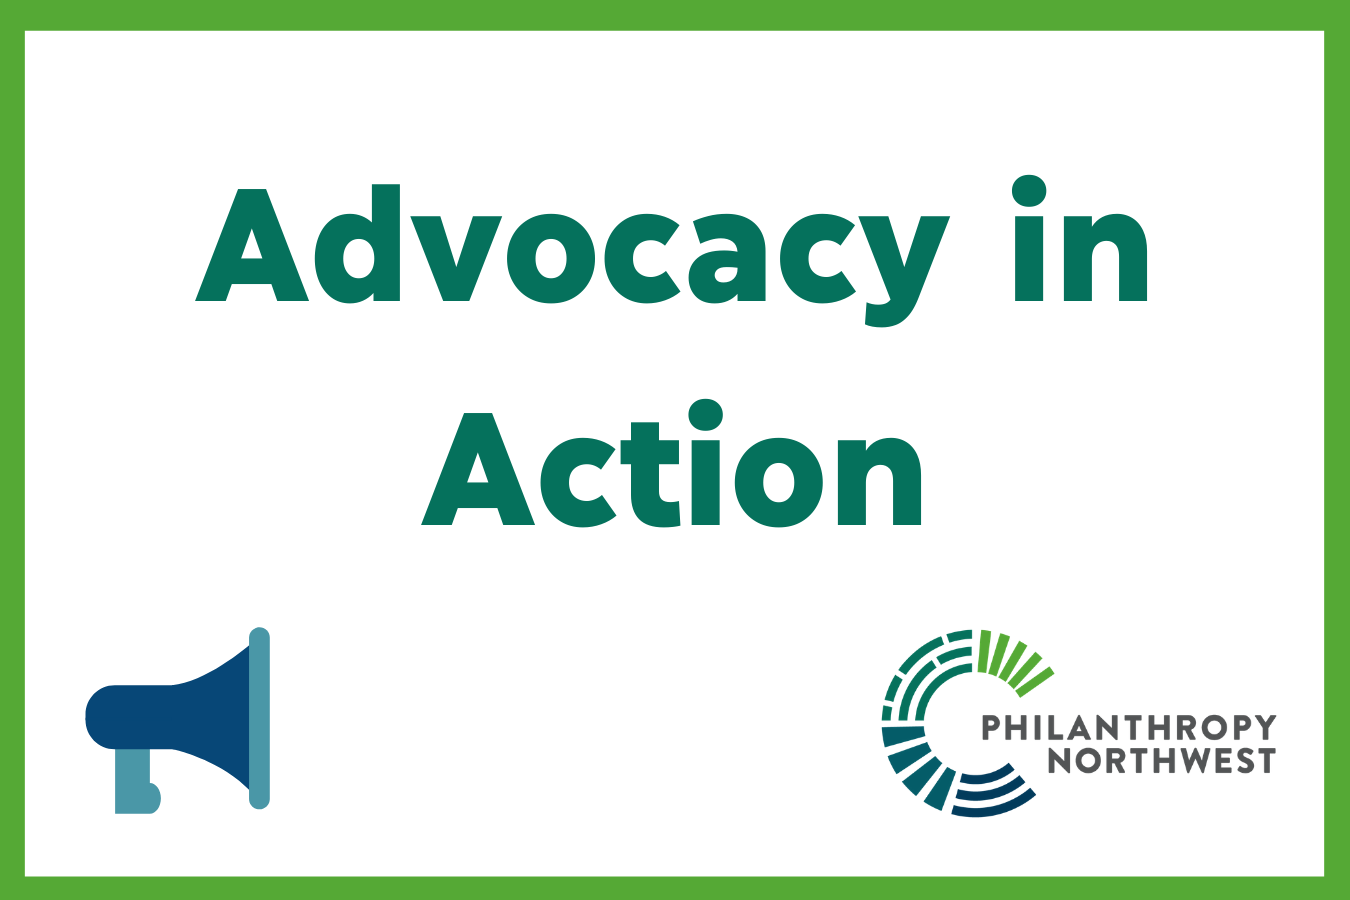 Web banner with event title: Advocacy in Action and a megaphone icon and the Philanthropy Northwest logo